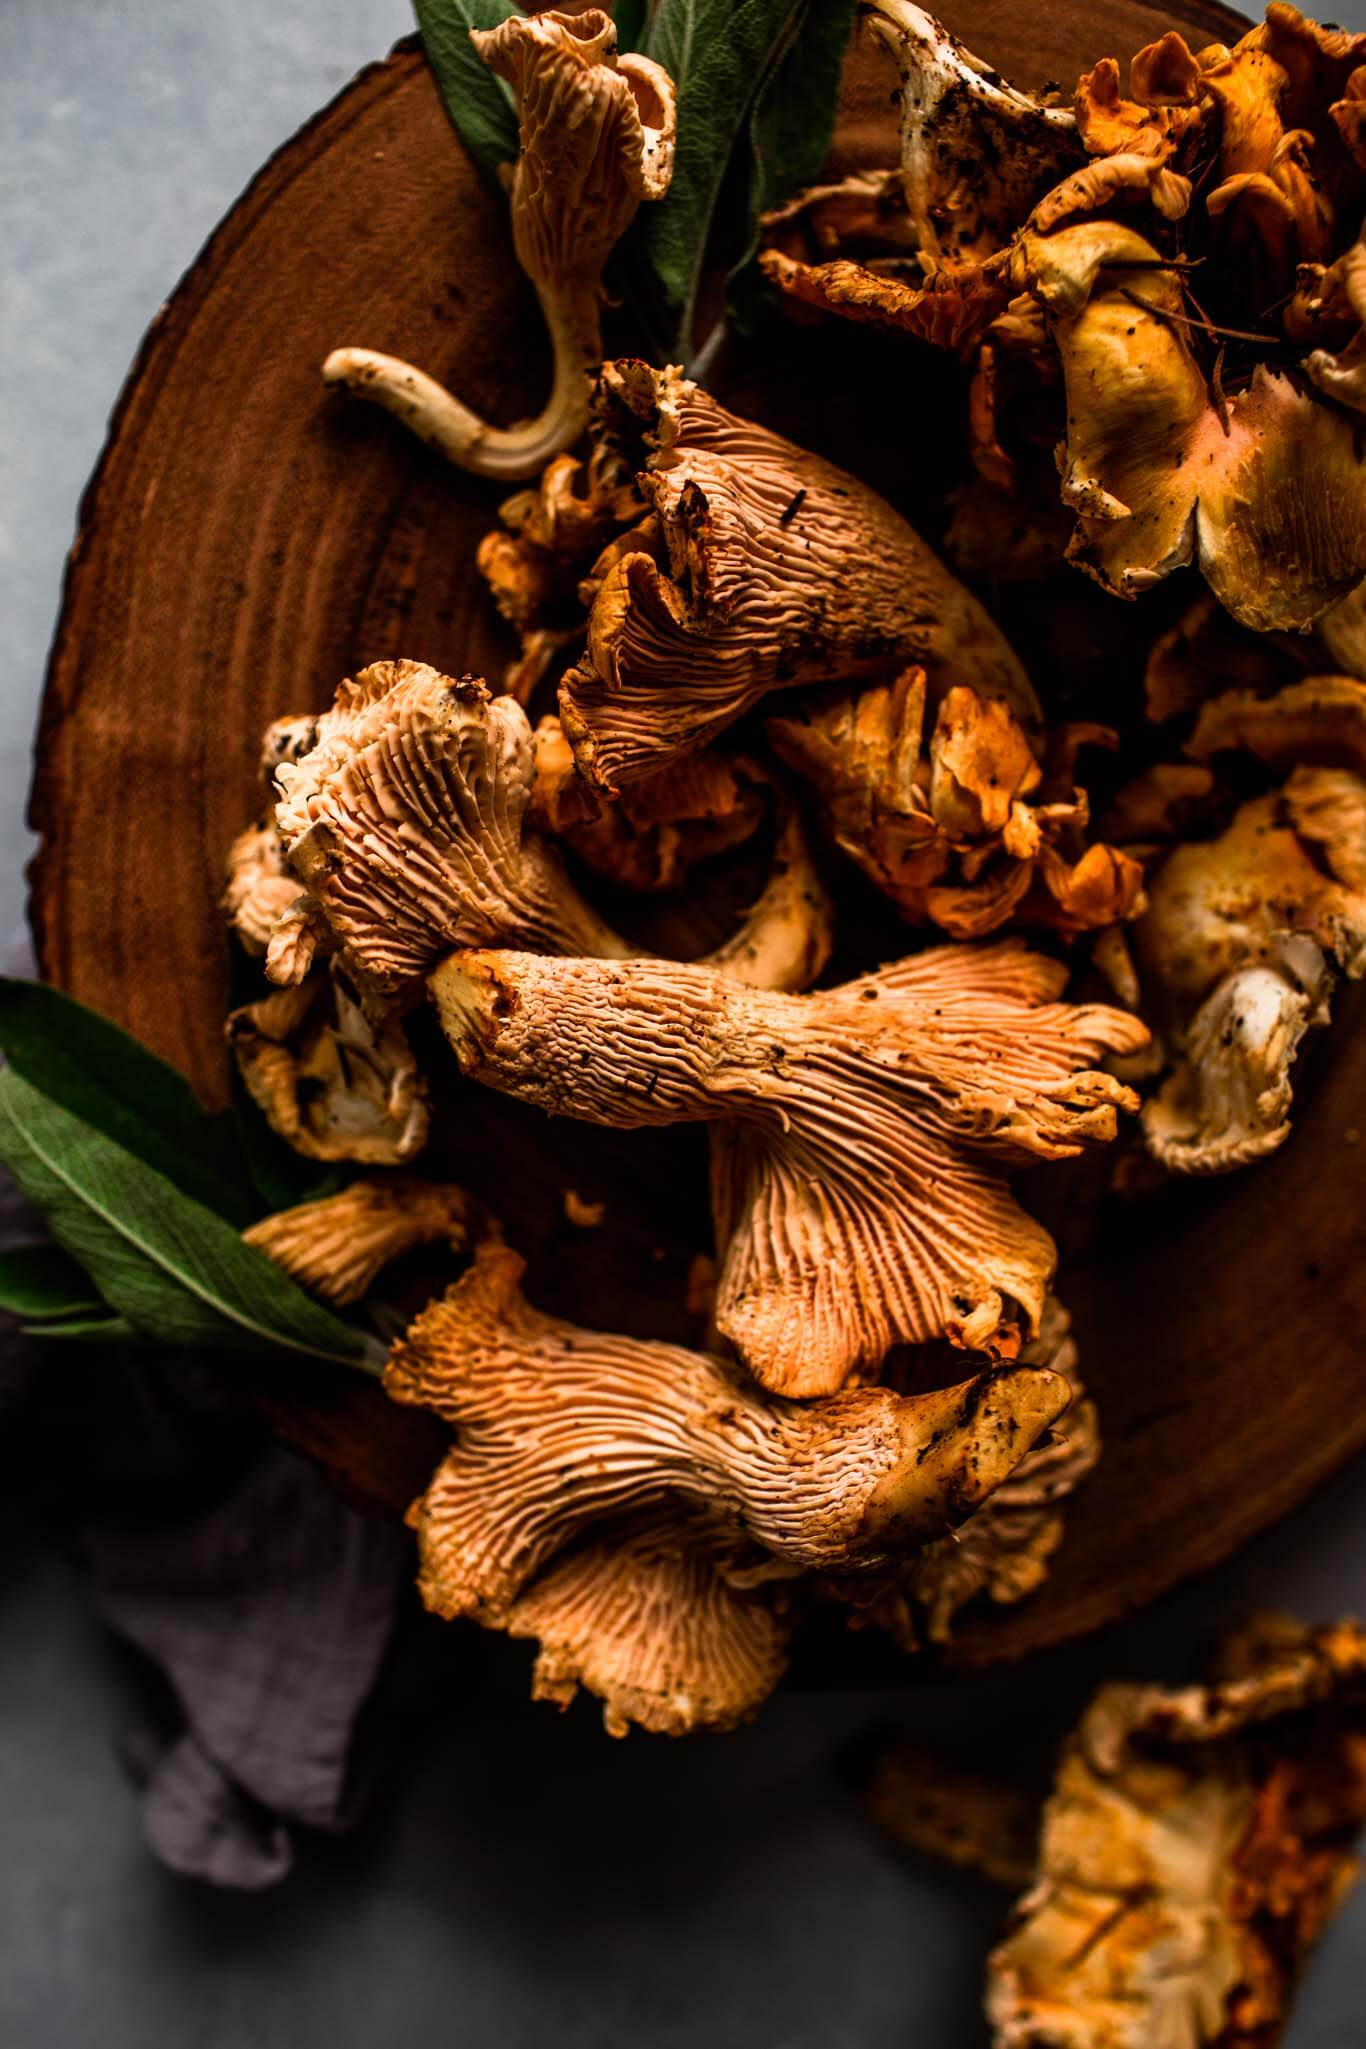 Pile of chanterelle mushrooms.